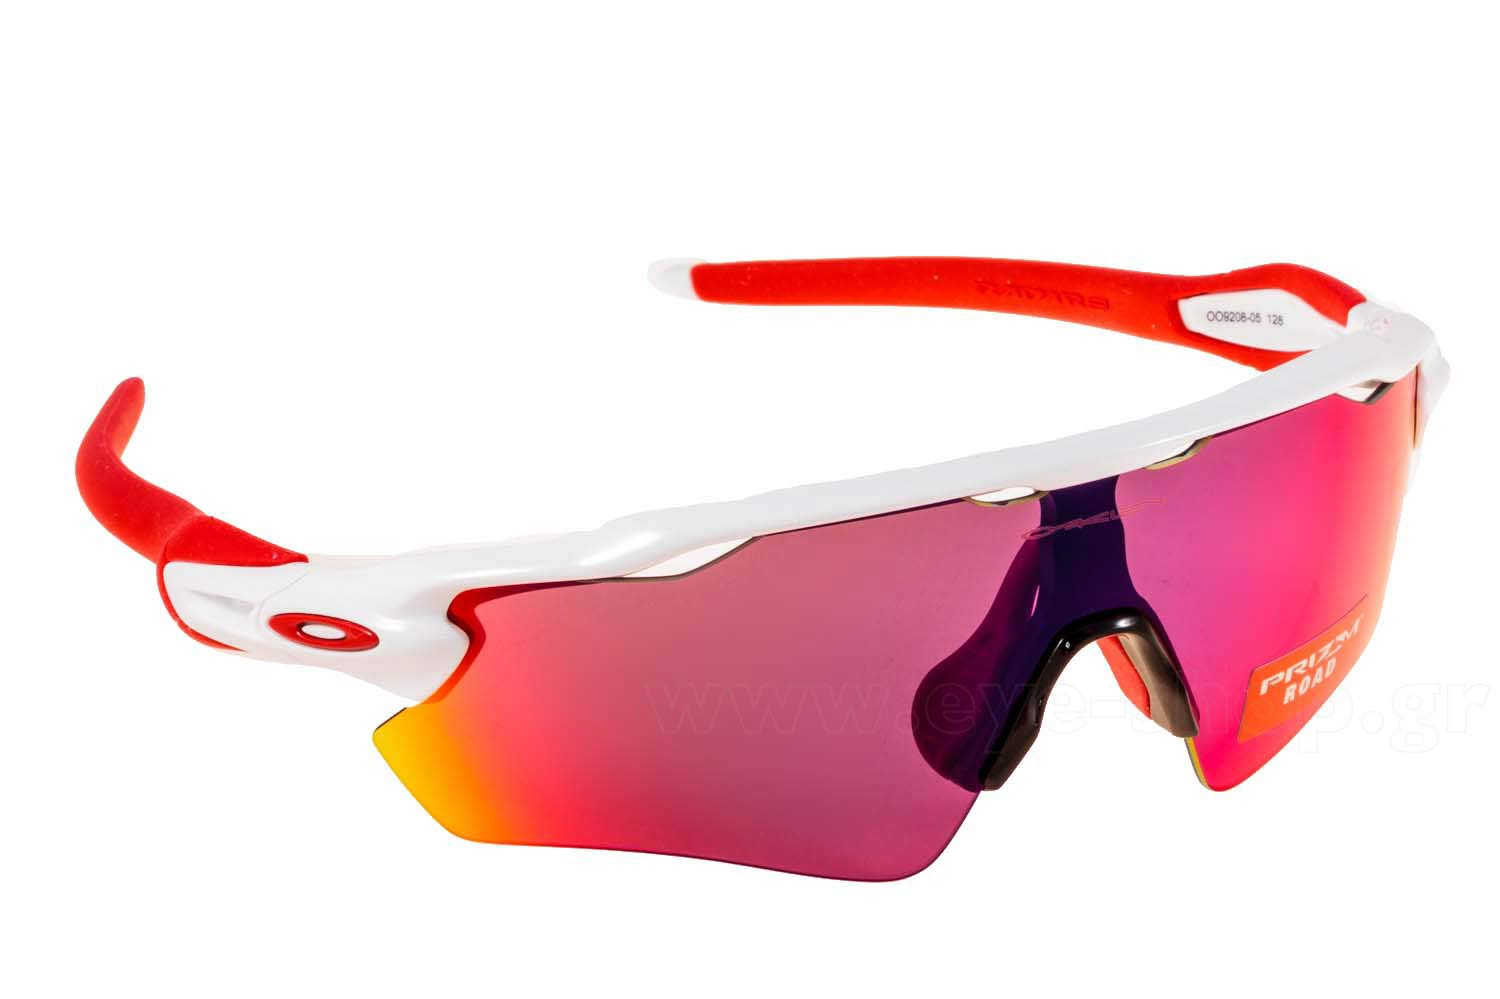 30d8d812e10 SUNGLASSES Oakley RADAR EV PATH 9208 05 White Prizm Road